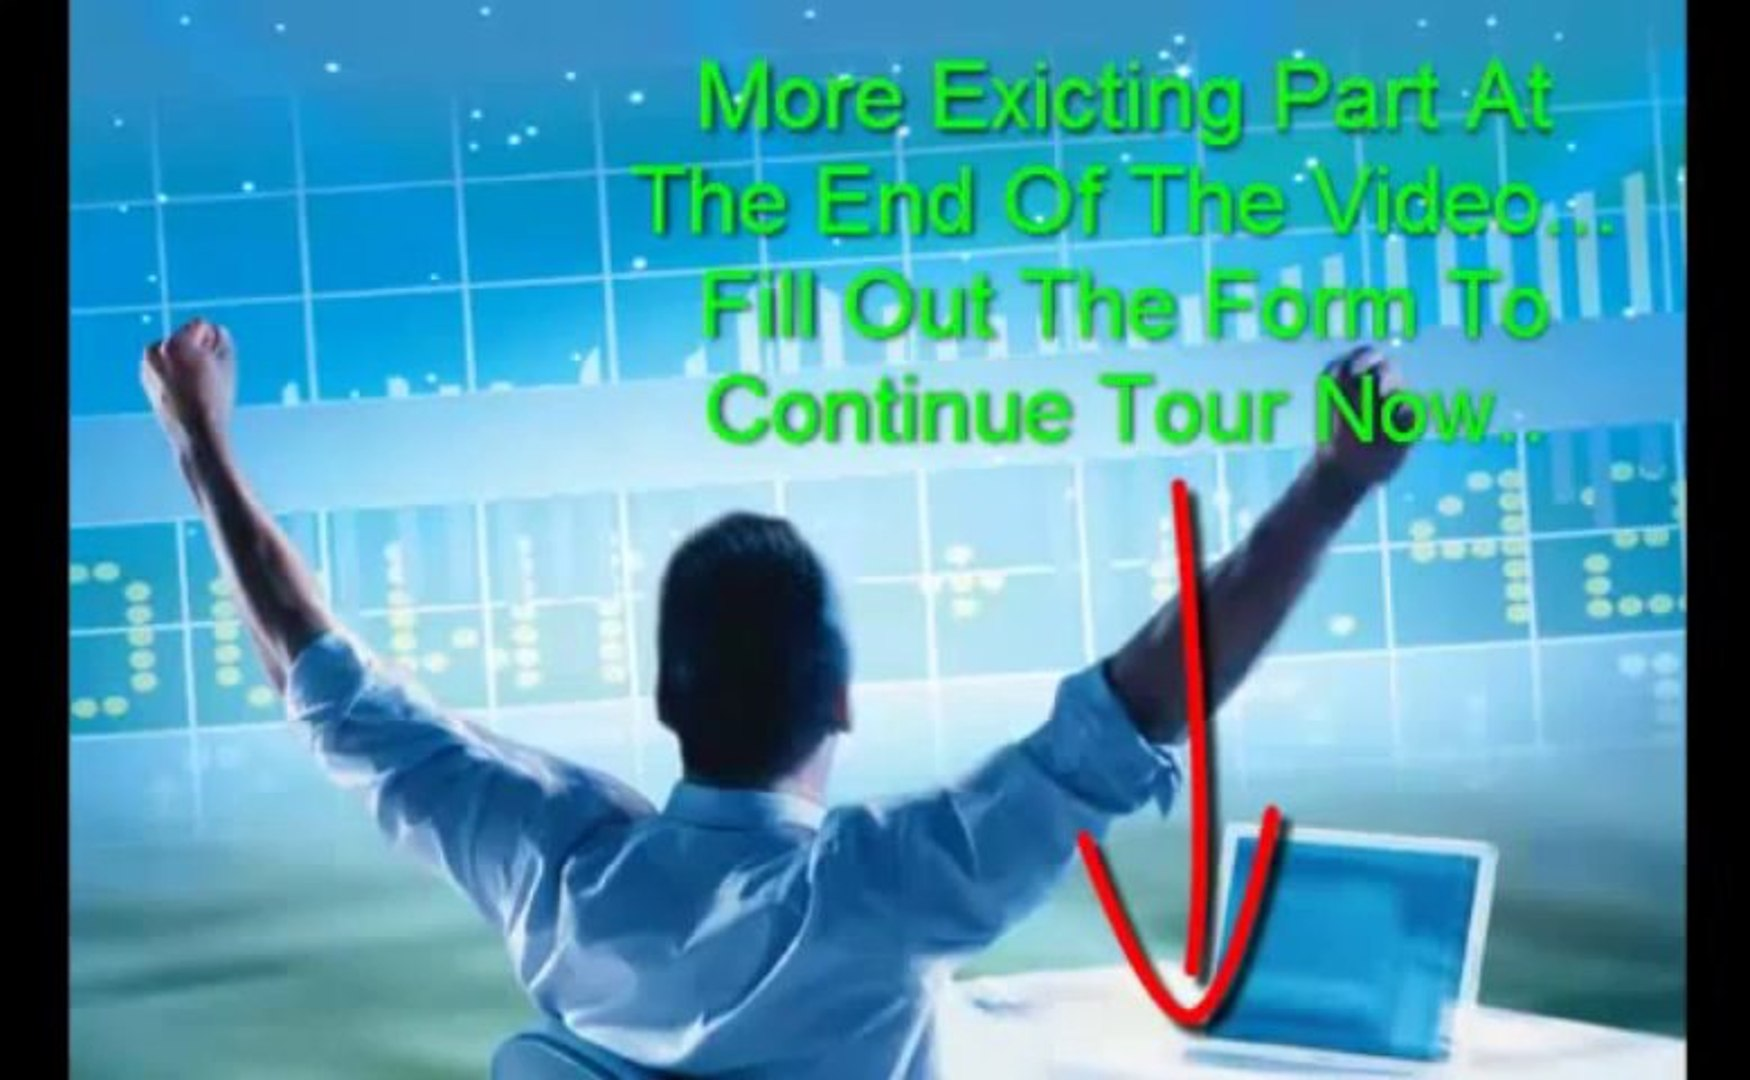 Penny Stock Guru-Penny Stock Egghead weekly alerts for life as part of experiment